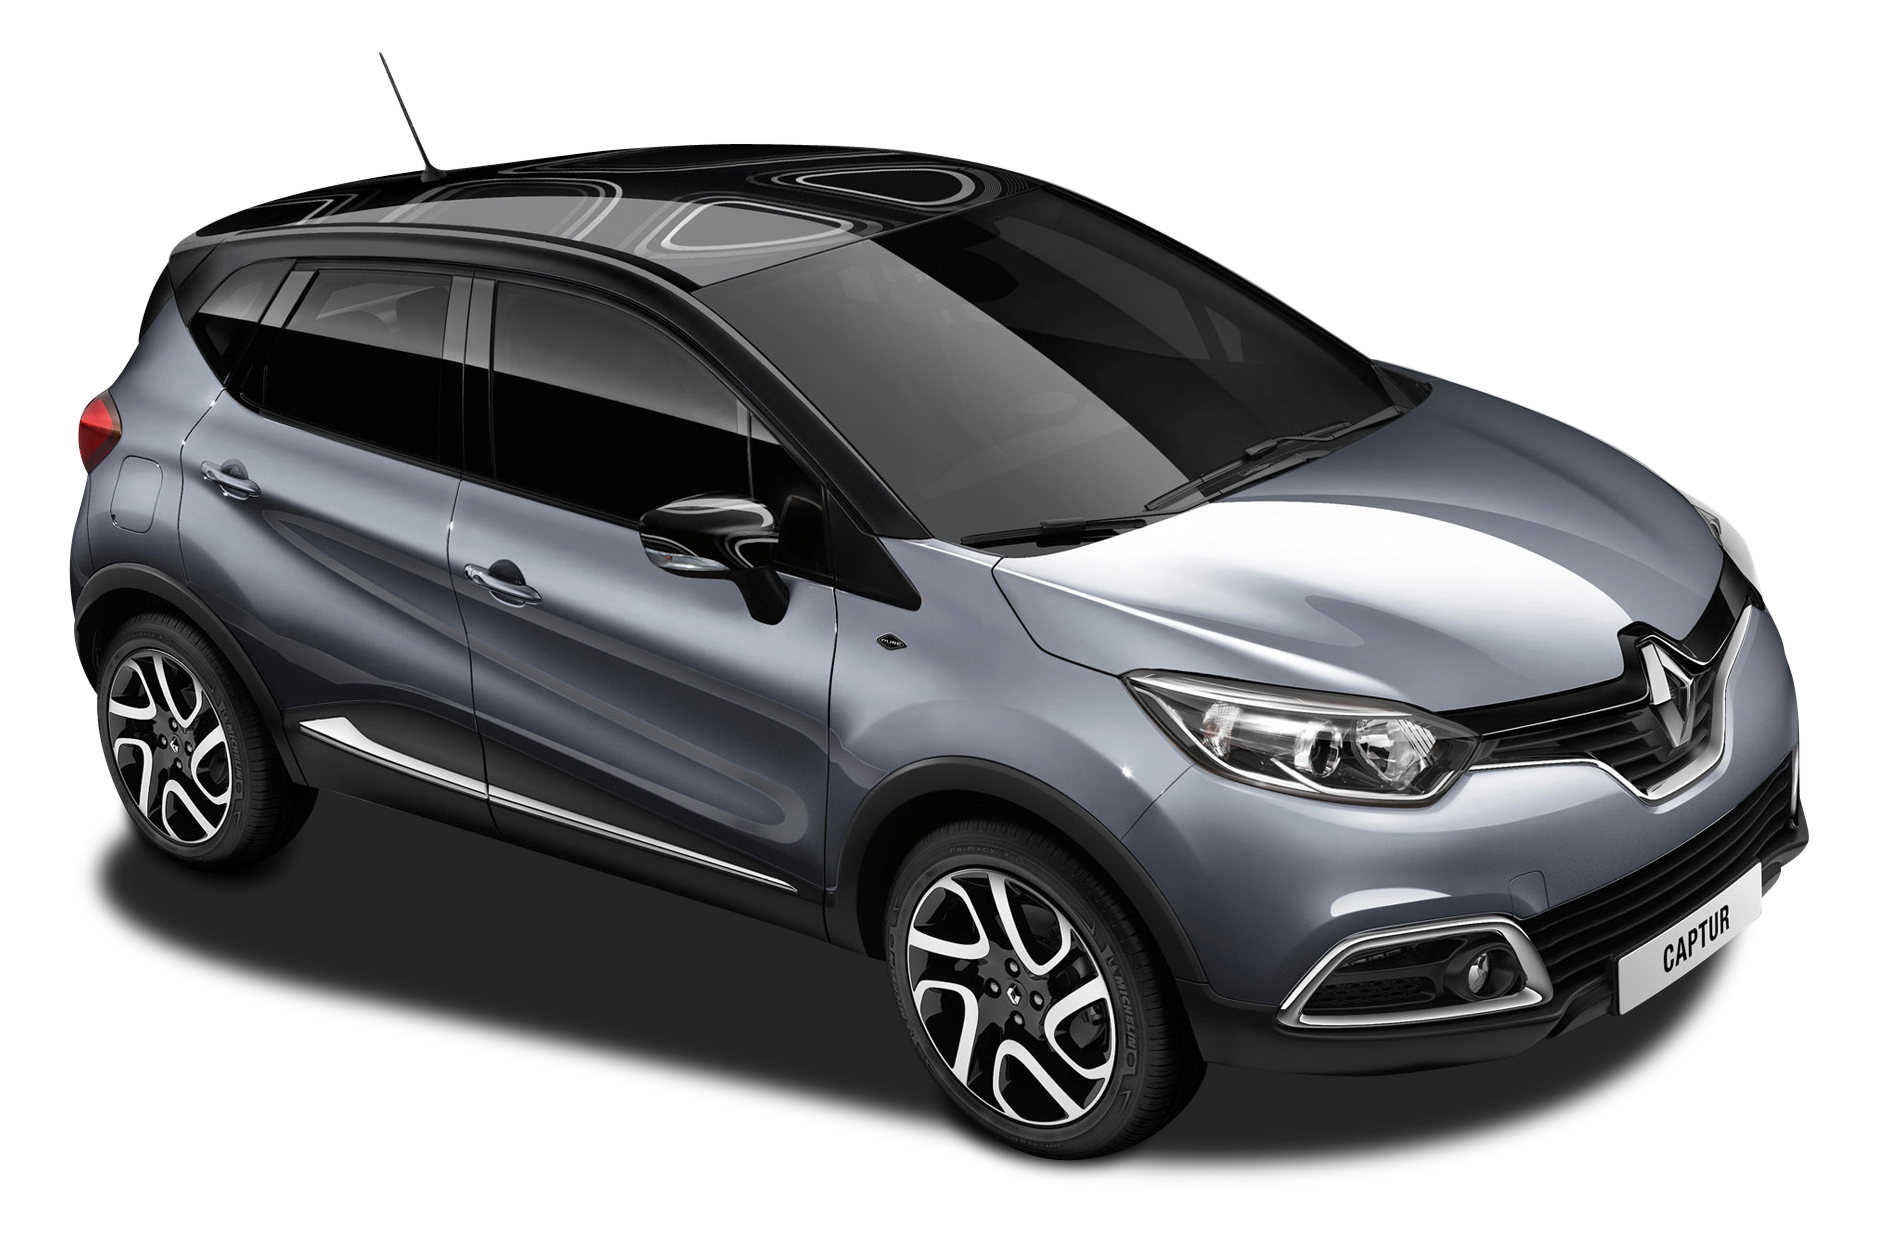 Renault Captur Car